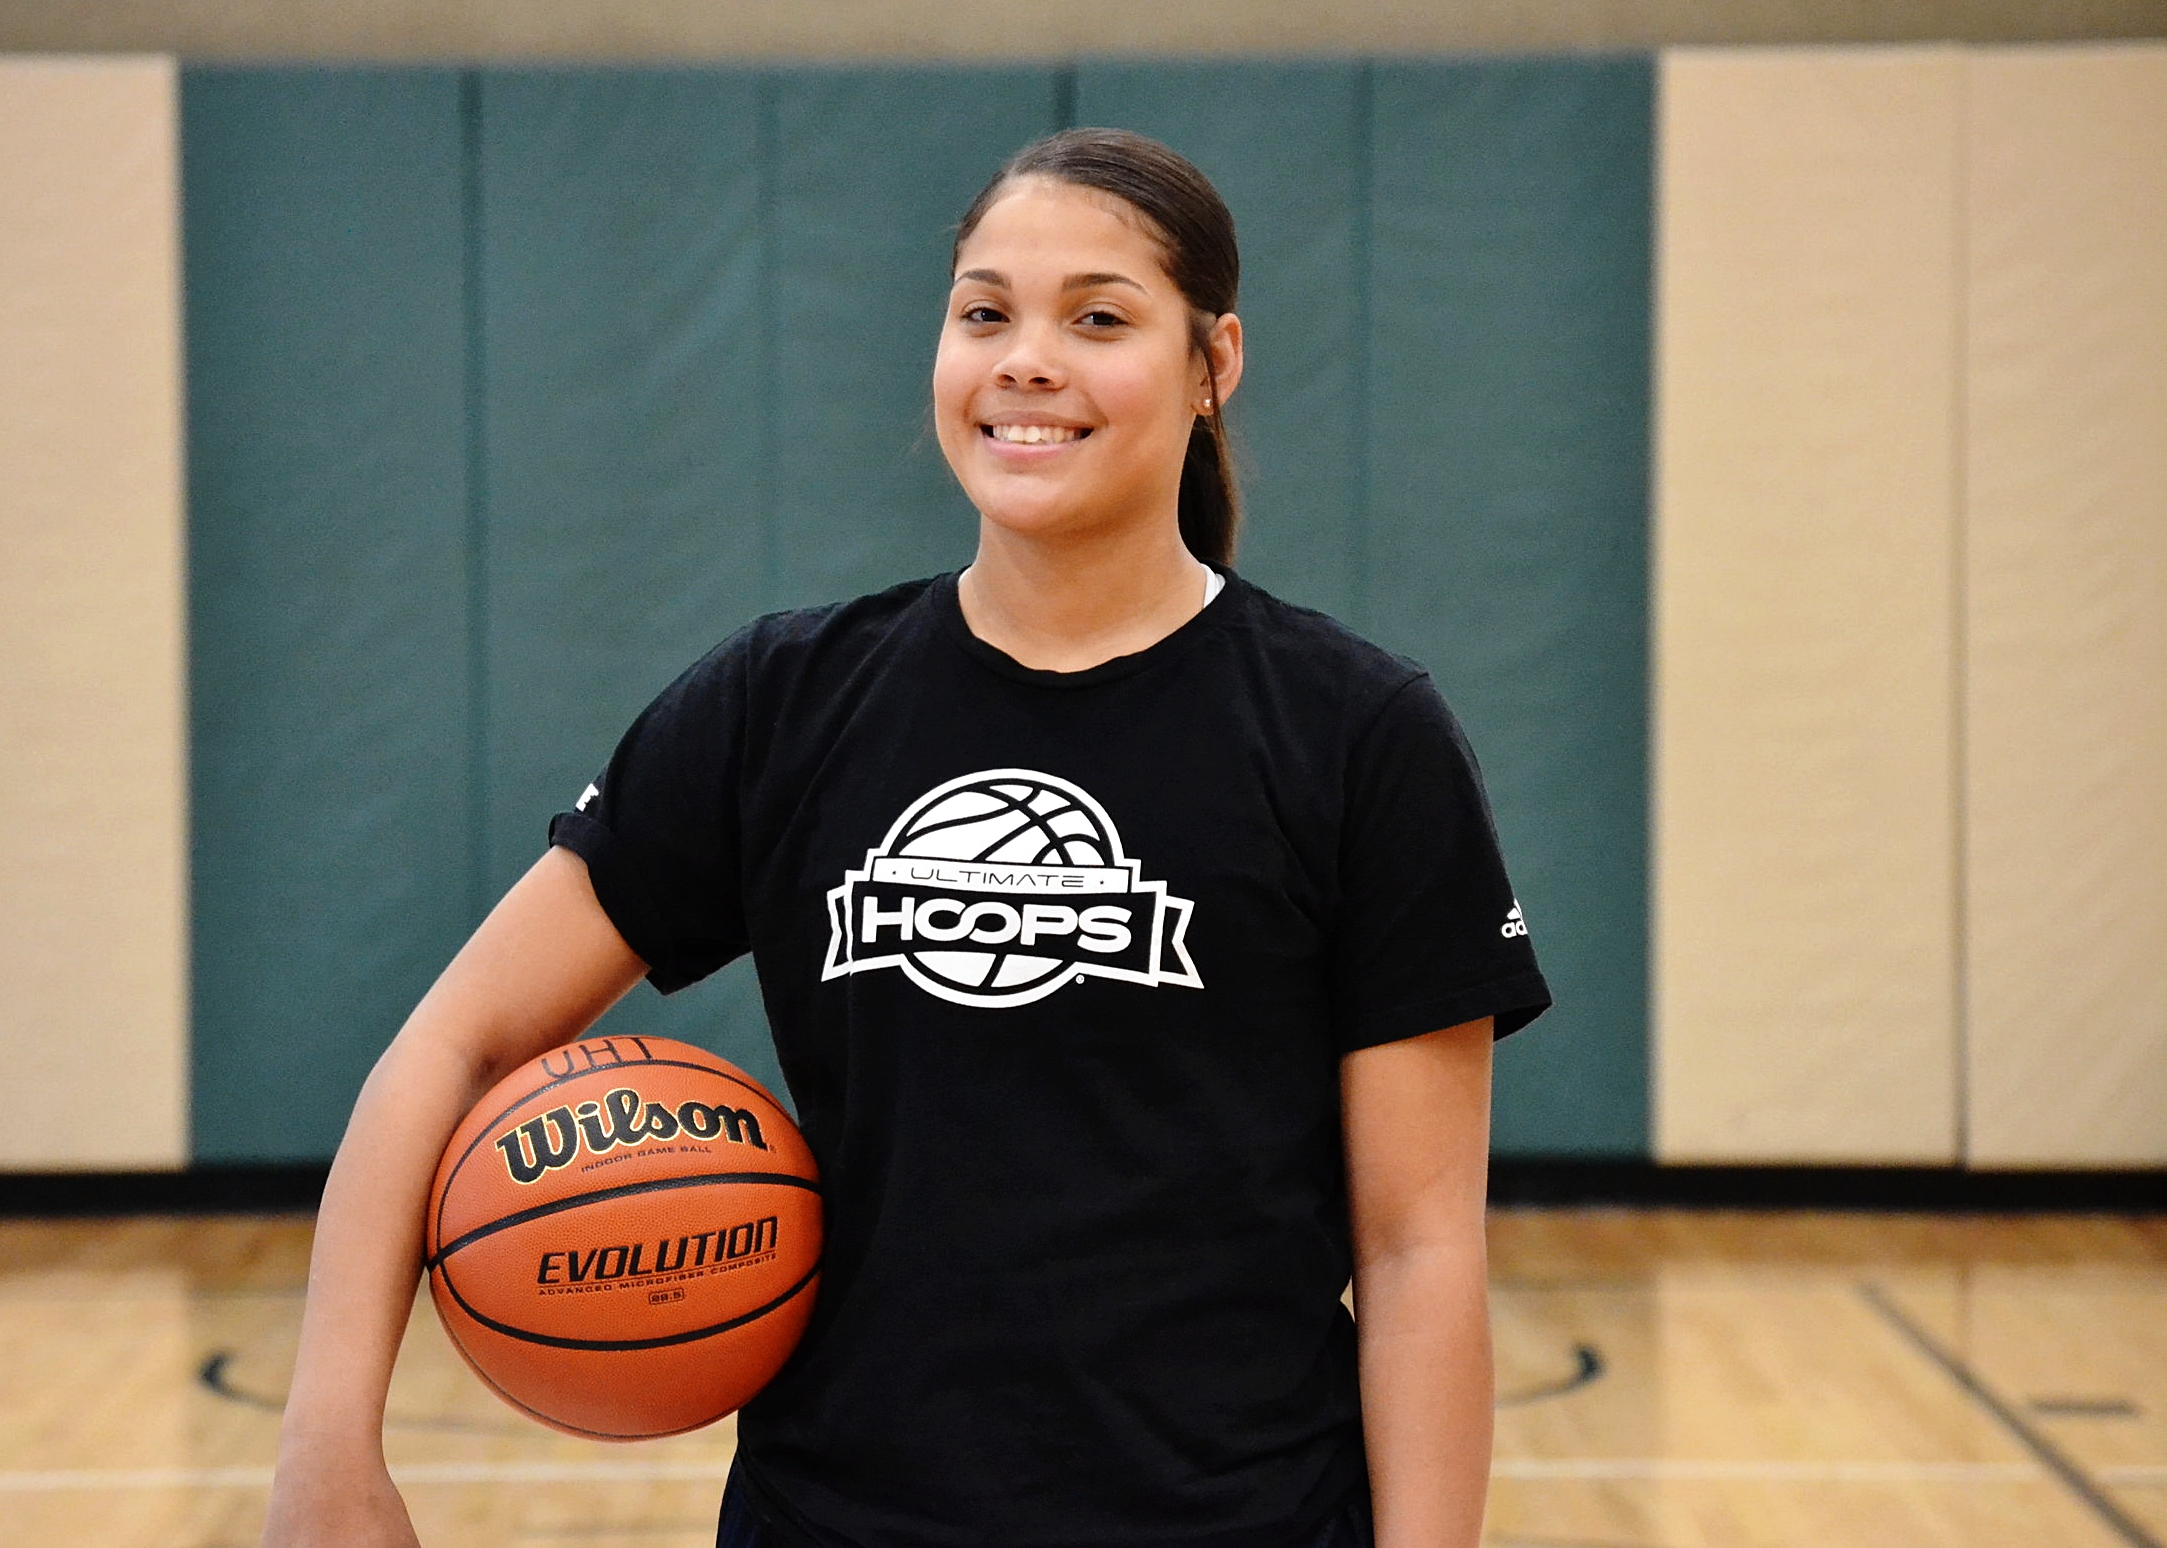 "DeNALI HUGHES - ""I chose Denali because when I first met her I asked her why is she so serious when it comes to basketball and she told me, ""because I take playing seriously."" Over time I noticed she put so much pressure on herself not to fail that I don't think she knew how to enjoy the game or the process of getting better. Now I think she knows how to enjoy the game and lead by example without having to always physically carry the team by herself. The biggest reason was just because someone isn't looked at as the face of a team or program doesn't mean they don't need to be told how proud you are of them and what they do doesn't go unnoticed.""-Jazz Williams, Ultimate Hoops Trainer, Colorado Springs"